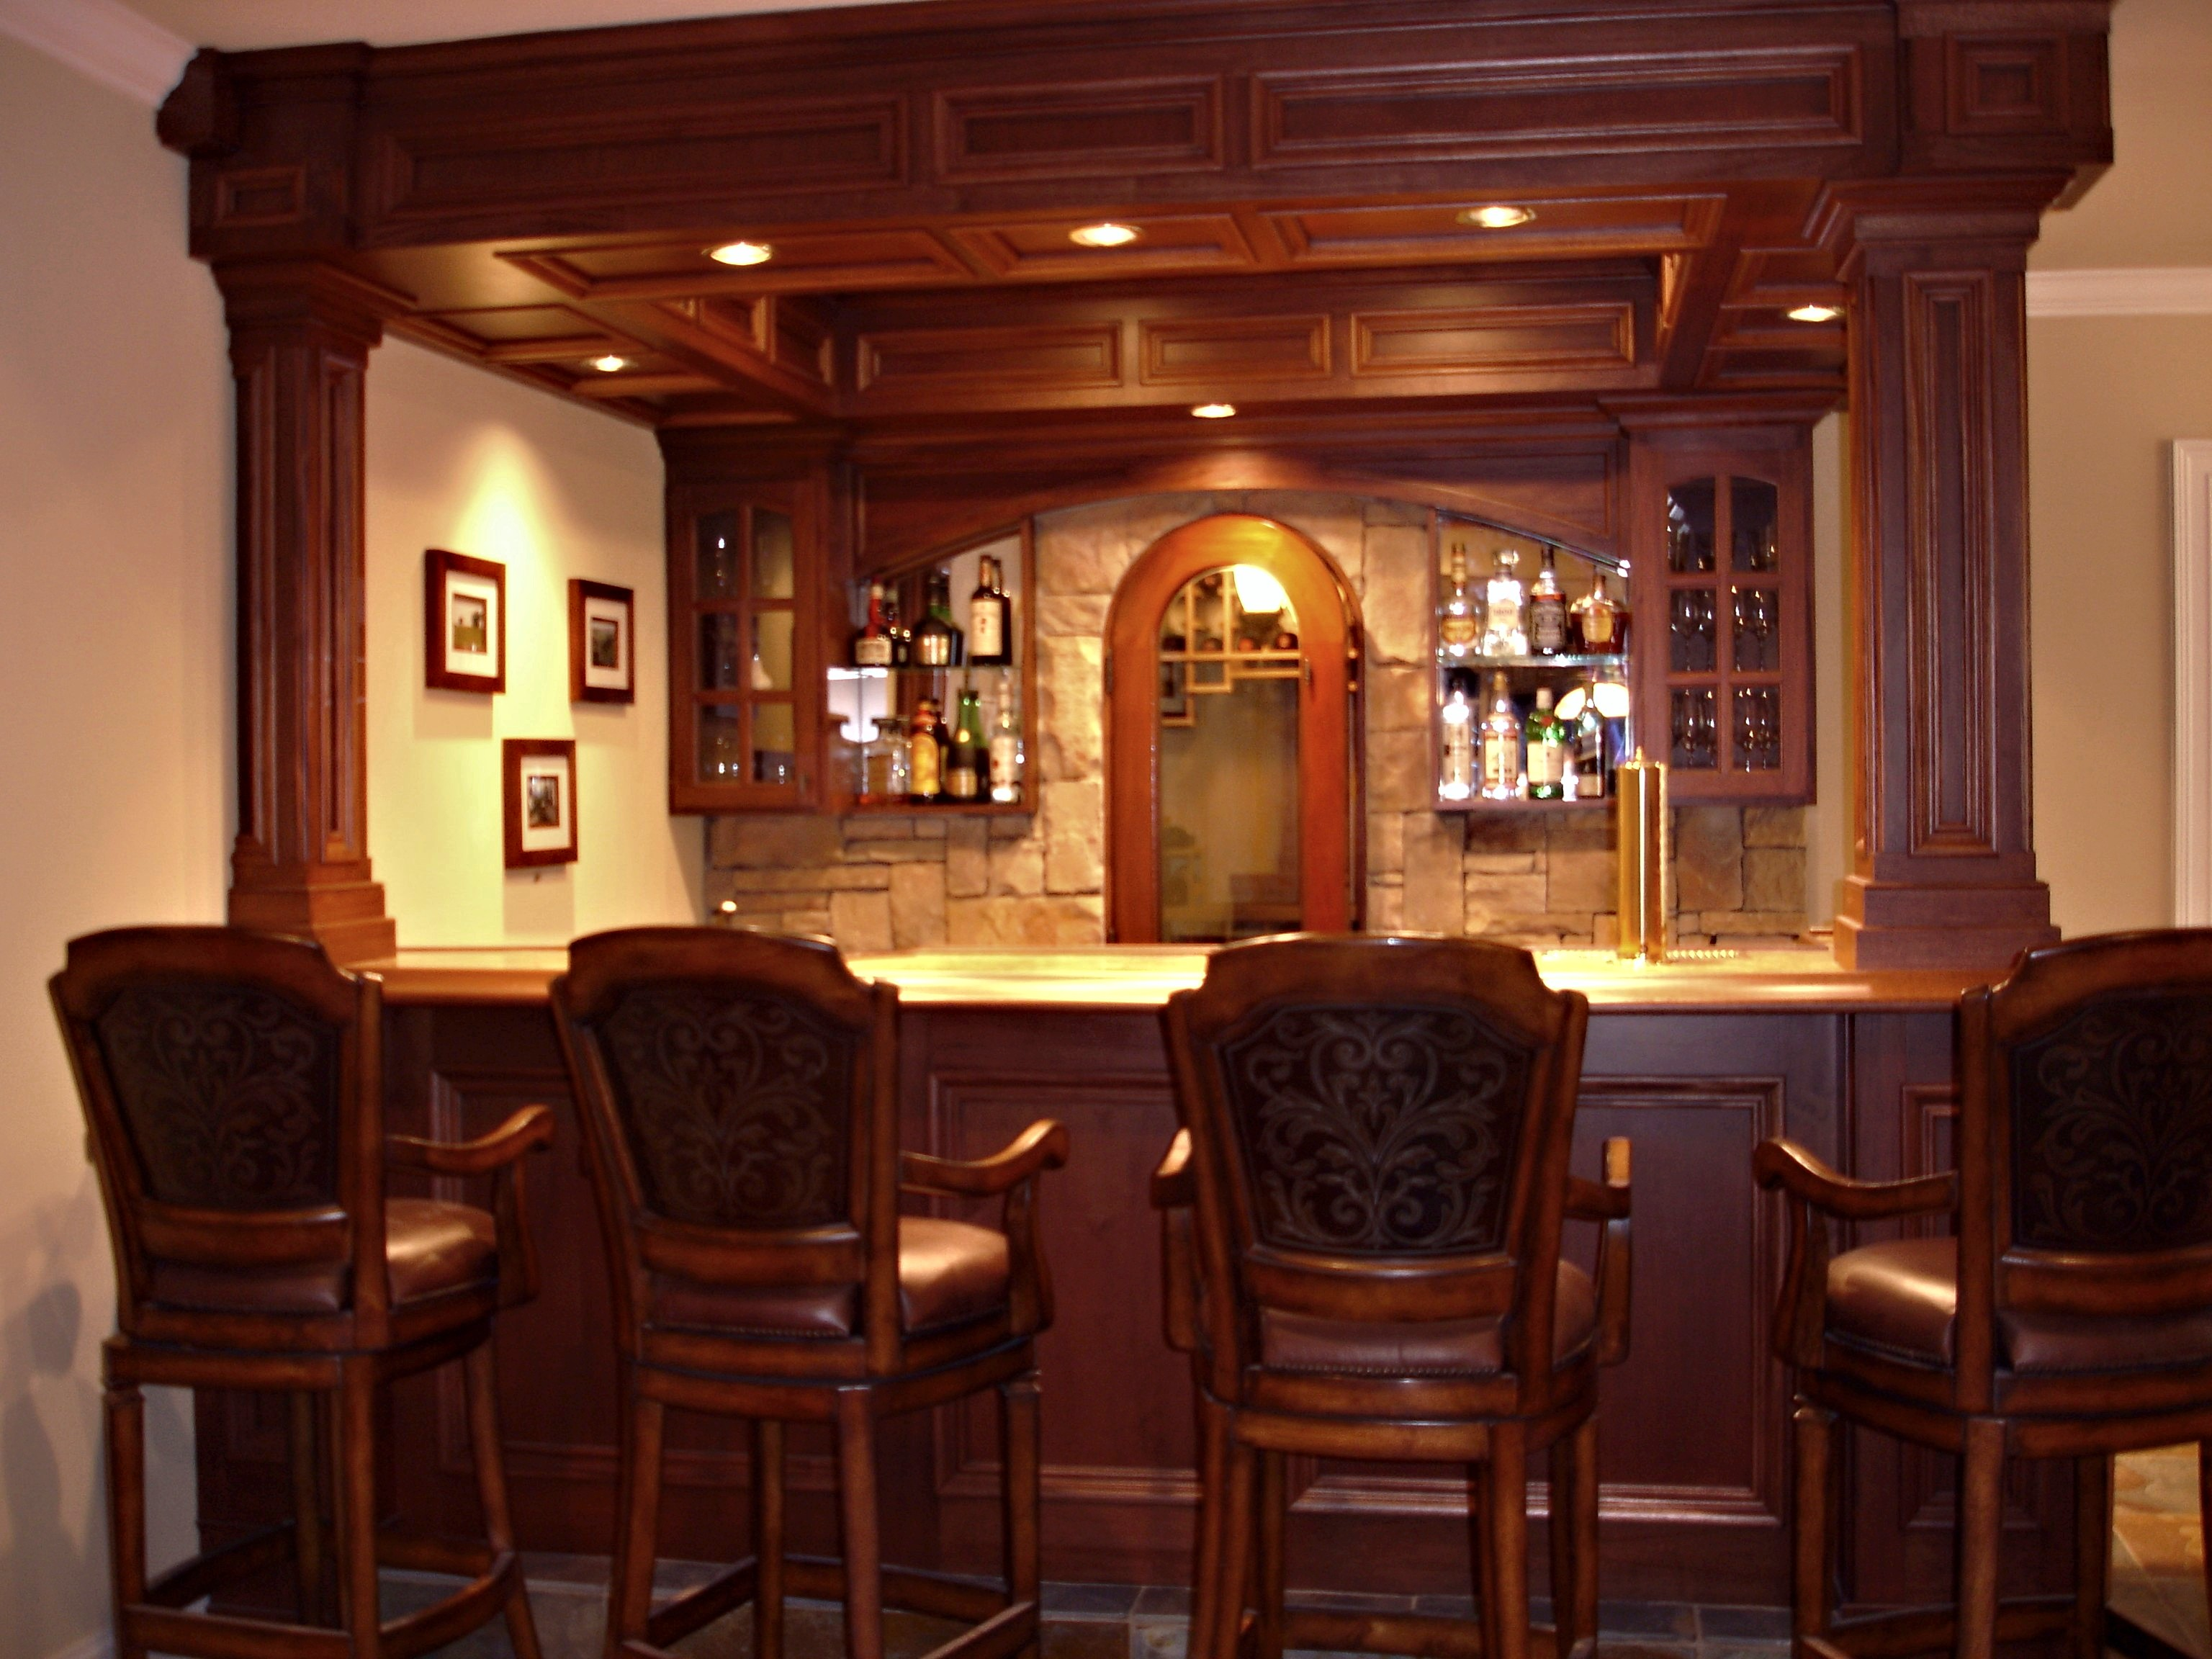 How to build a custom residential bar keystone Custom build a house online